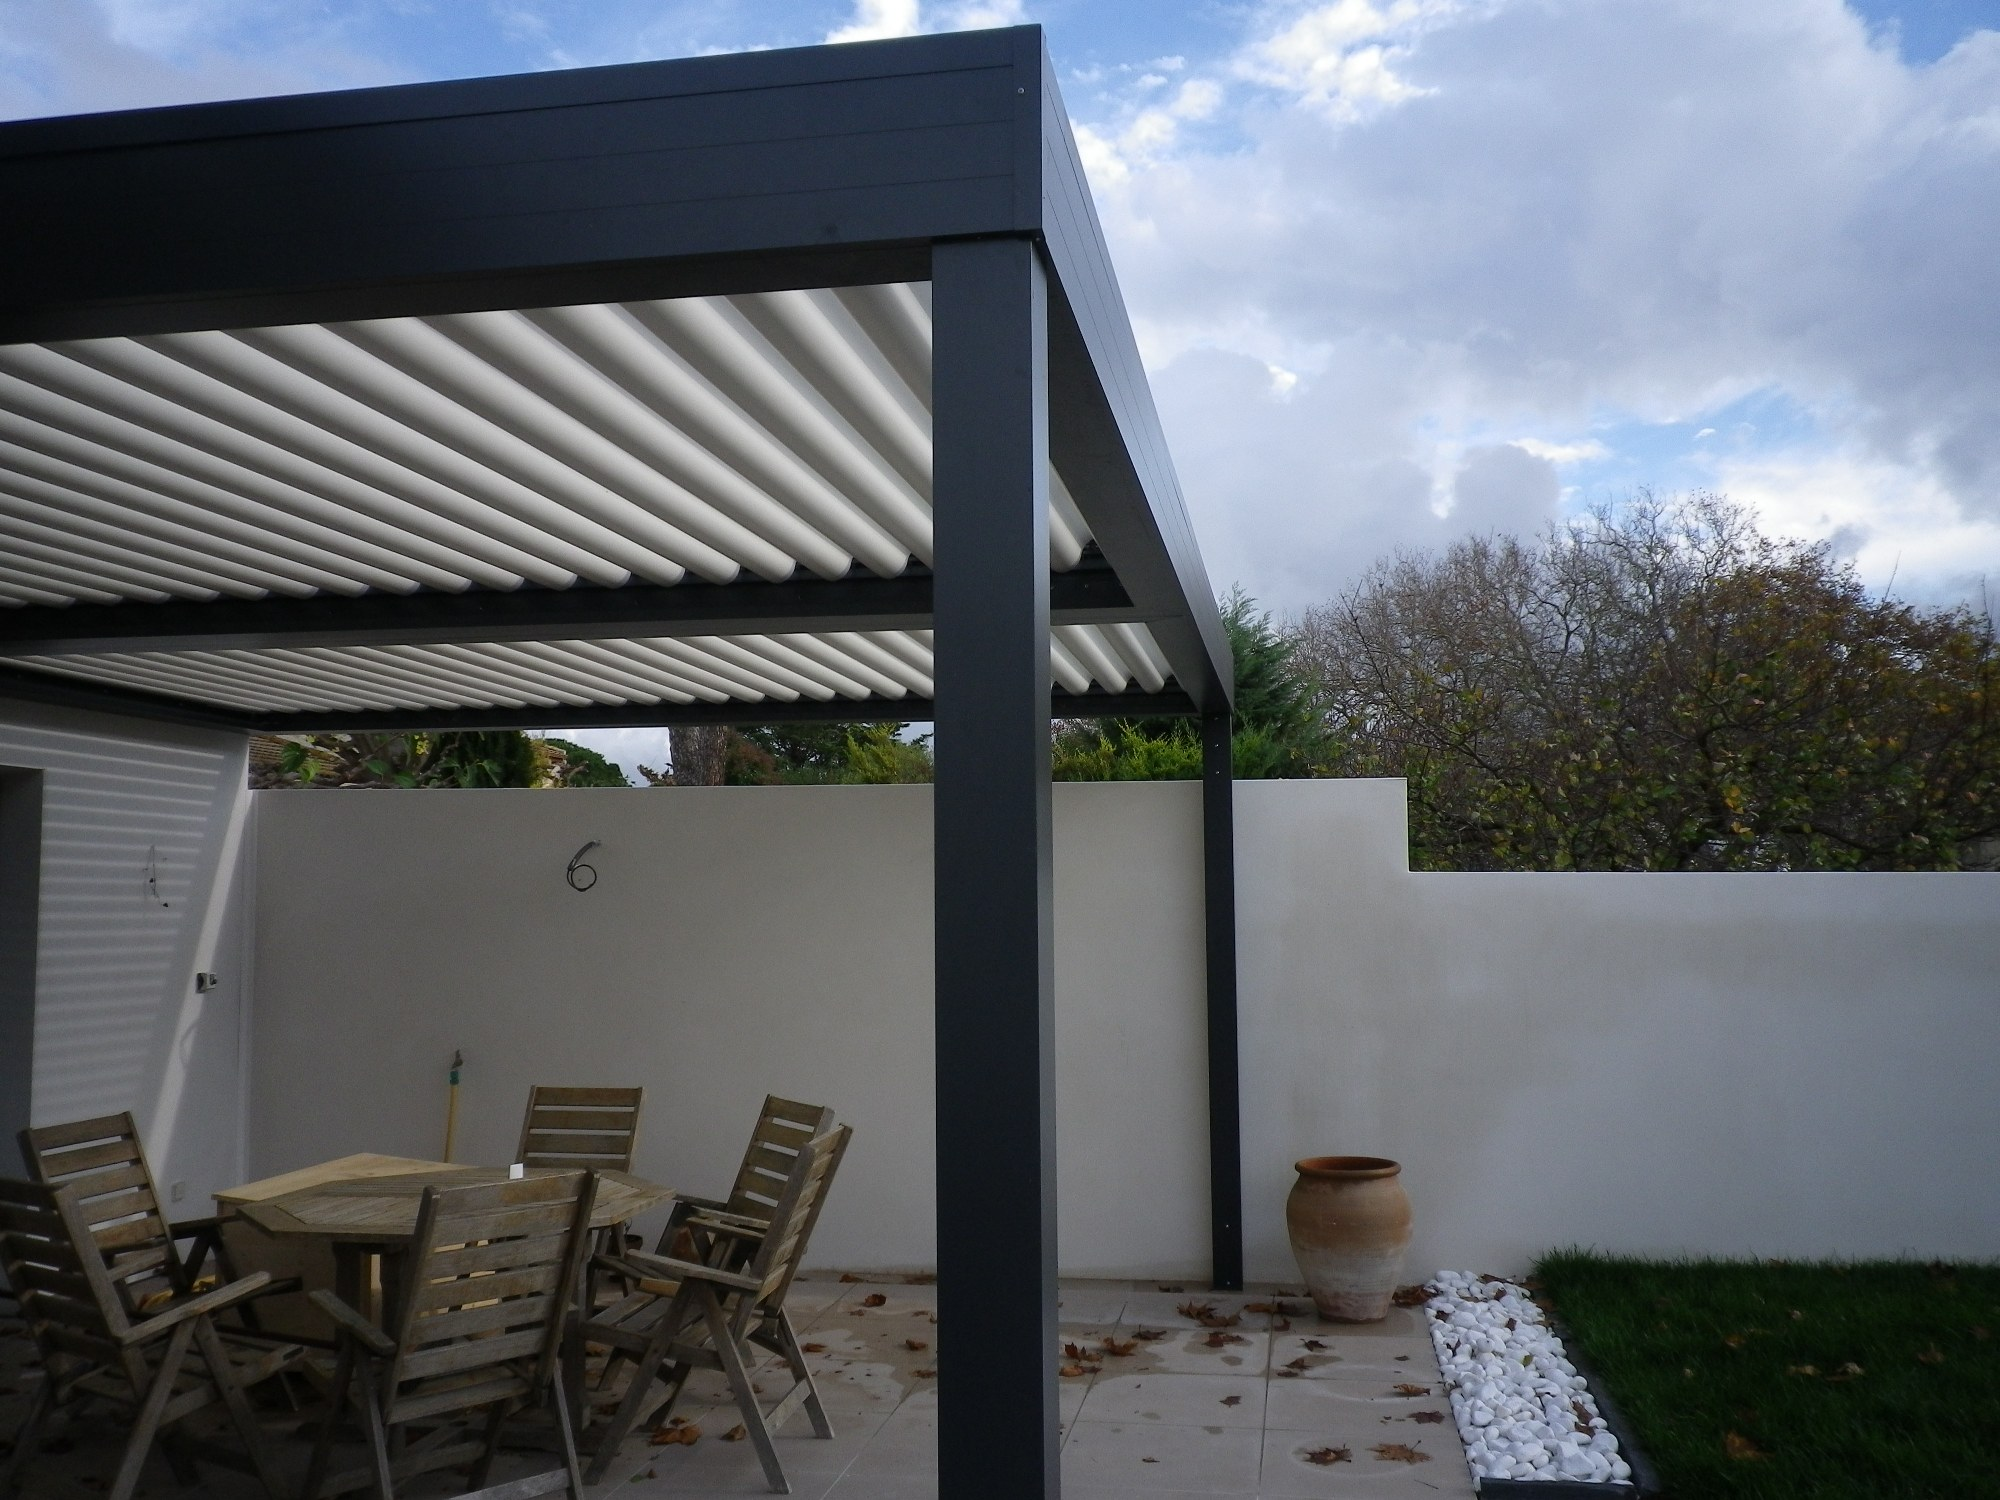 Lame Orientable Pour Pergola 28 Images Lame Aluminium